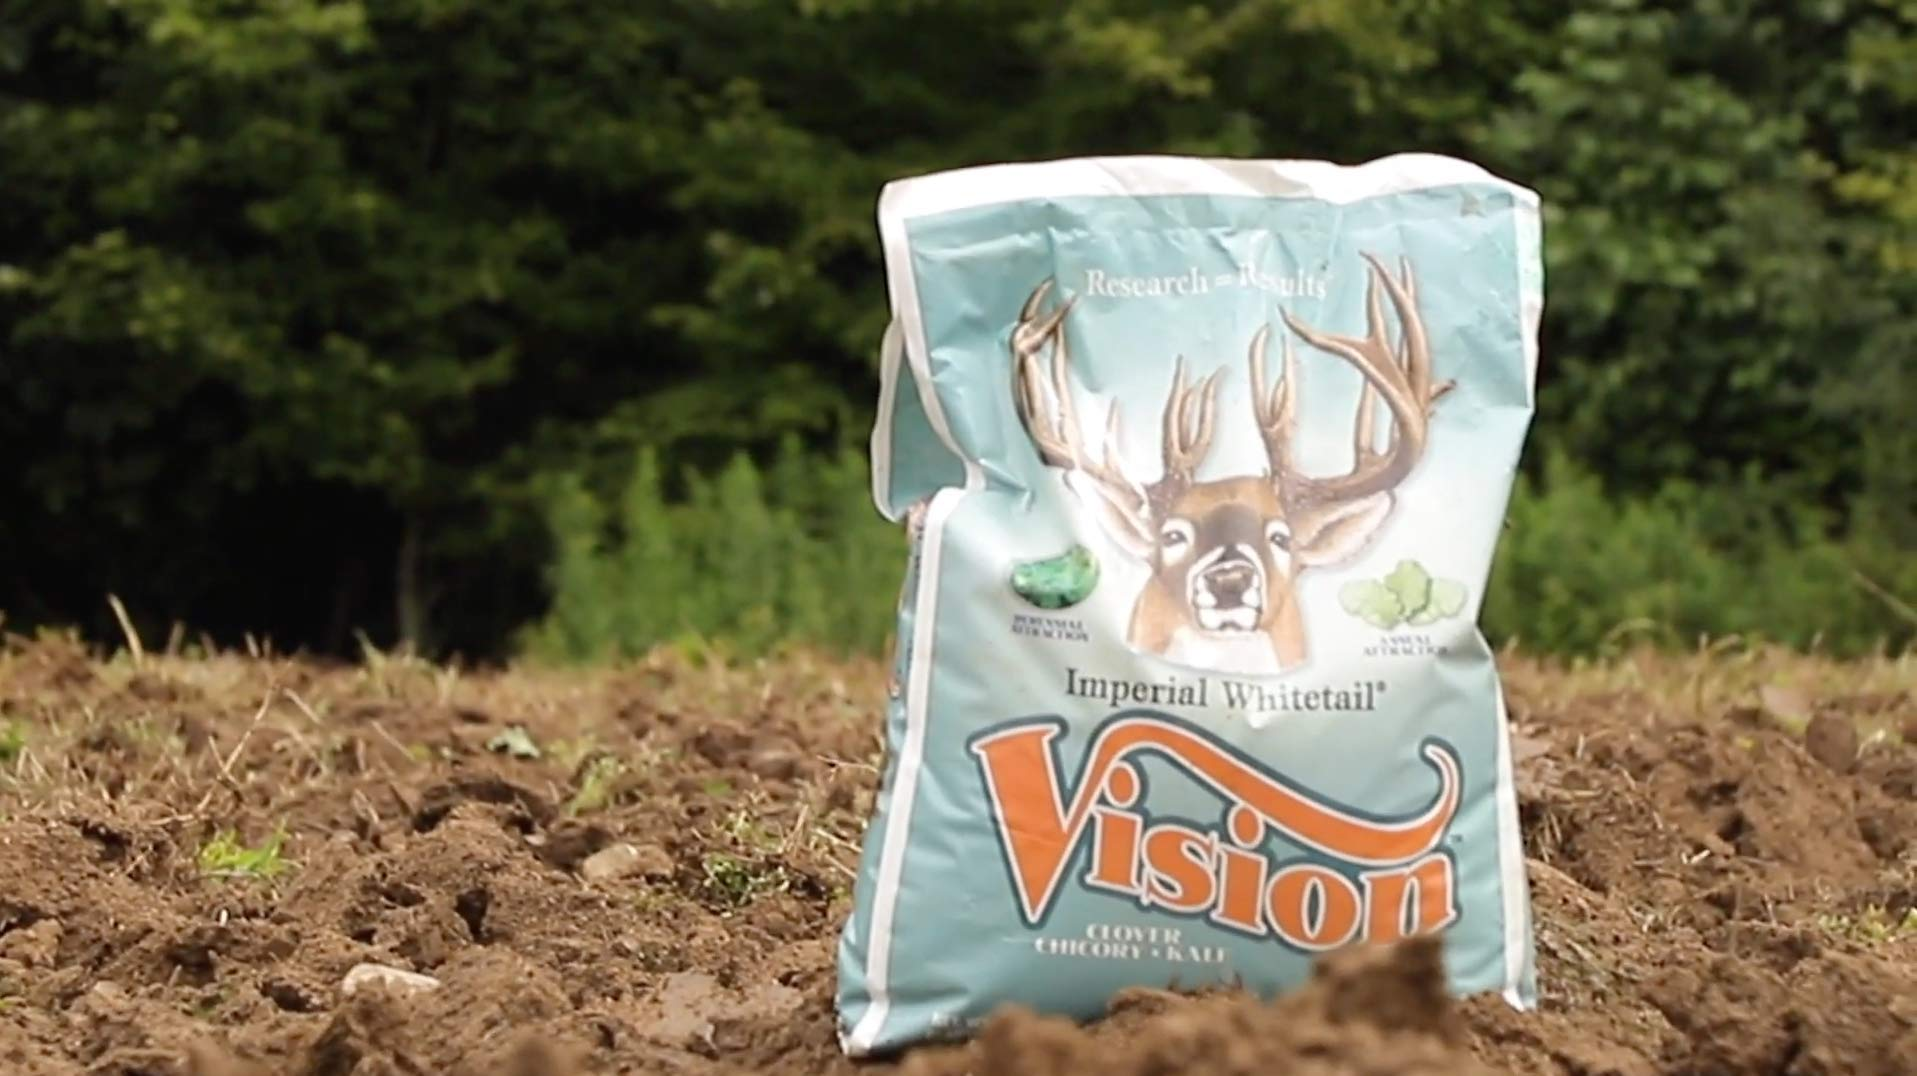 Whitetail Institute Imperial Whitetail VISION Food Plot Seed, 18 Pound by Whitetail Institute (Image #2)